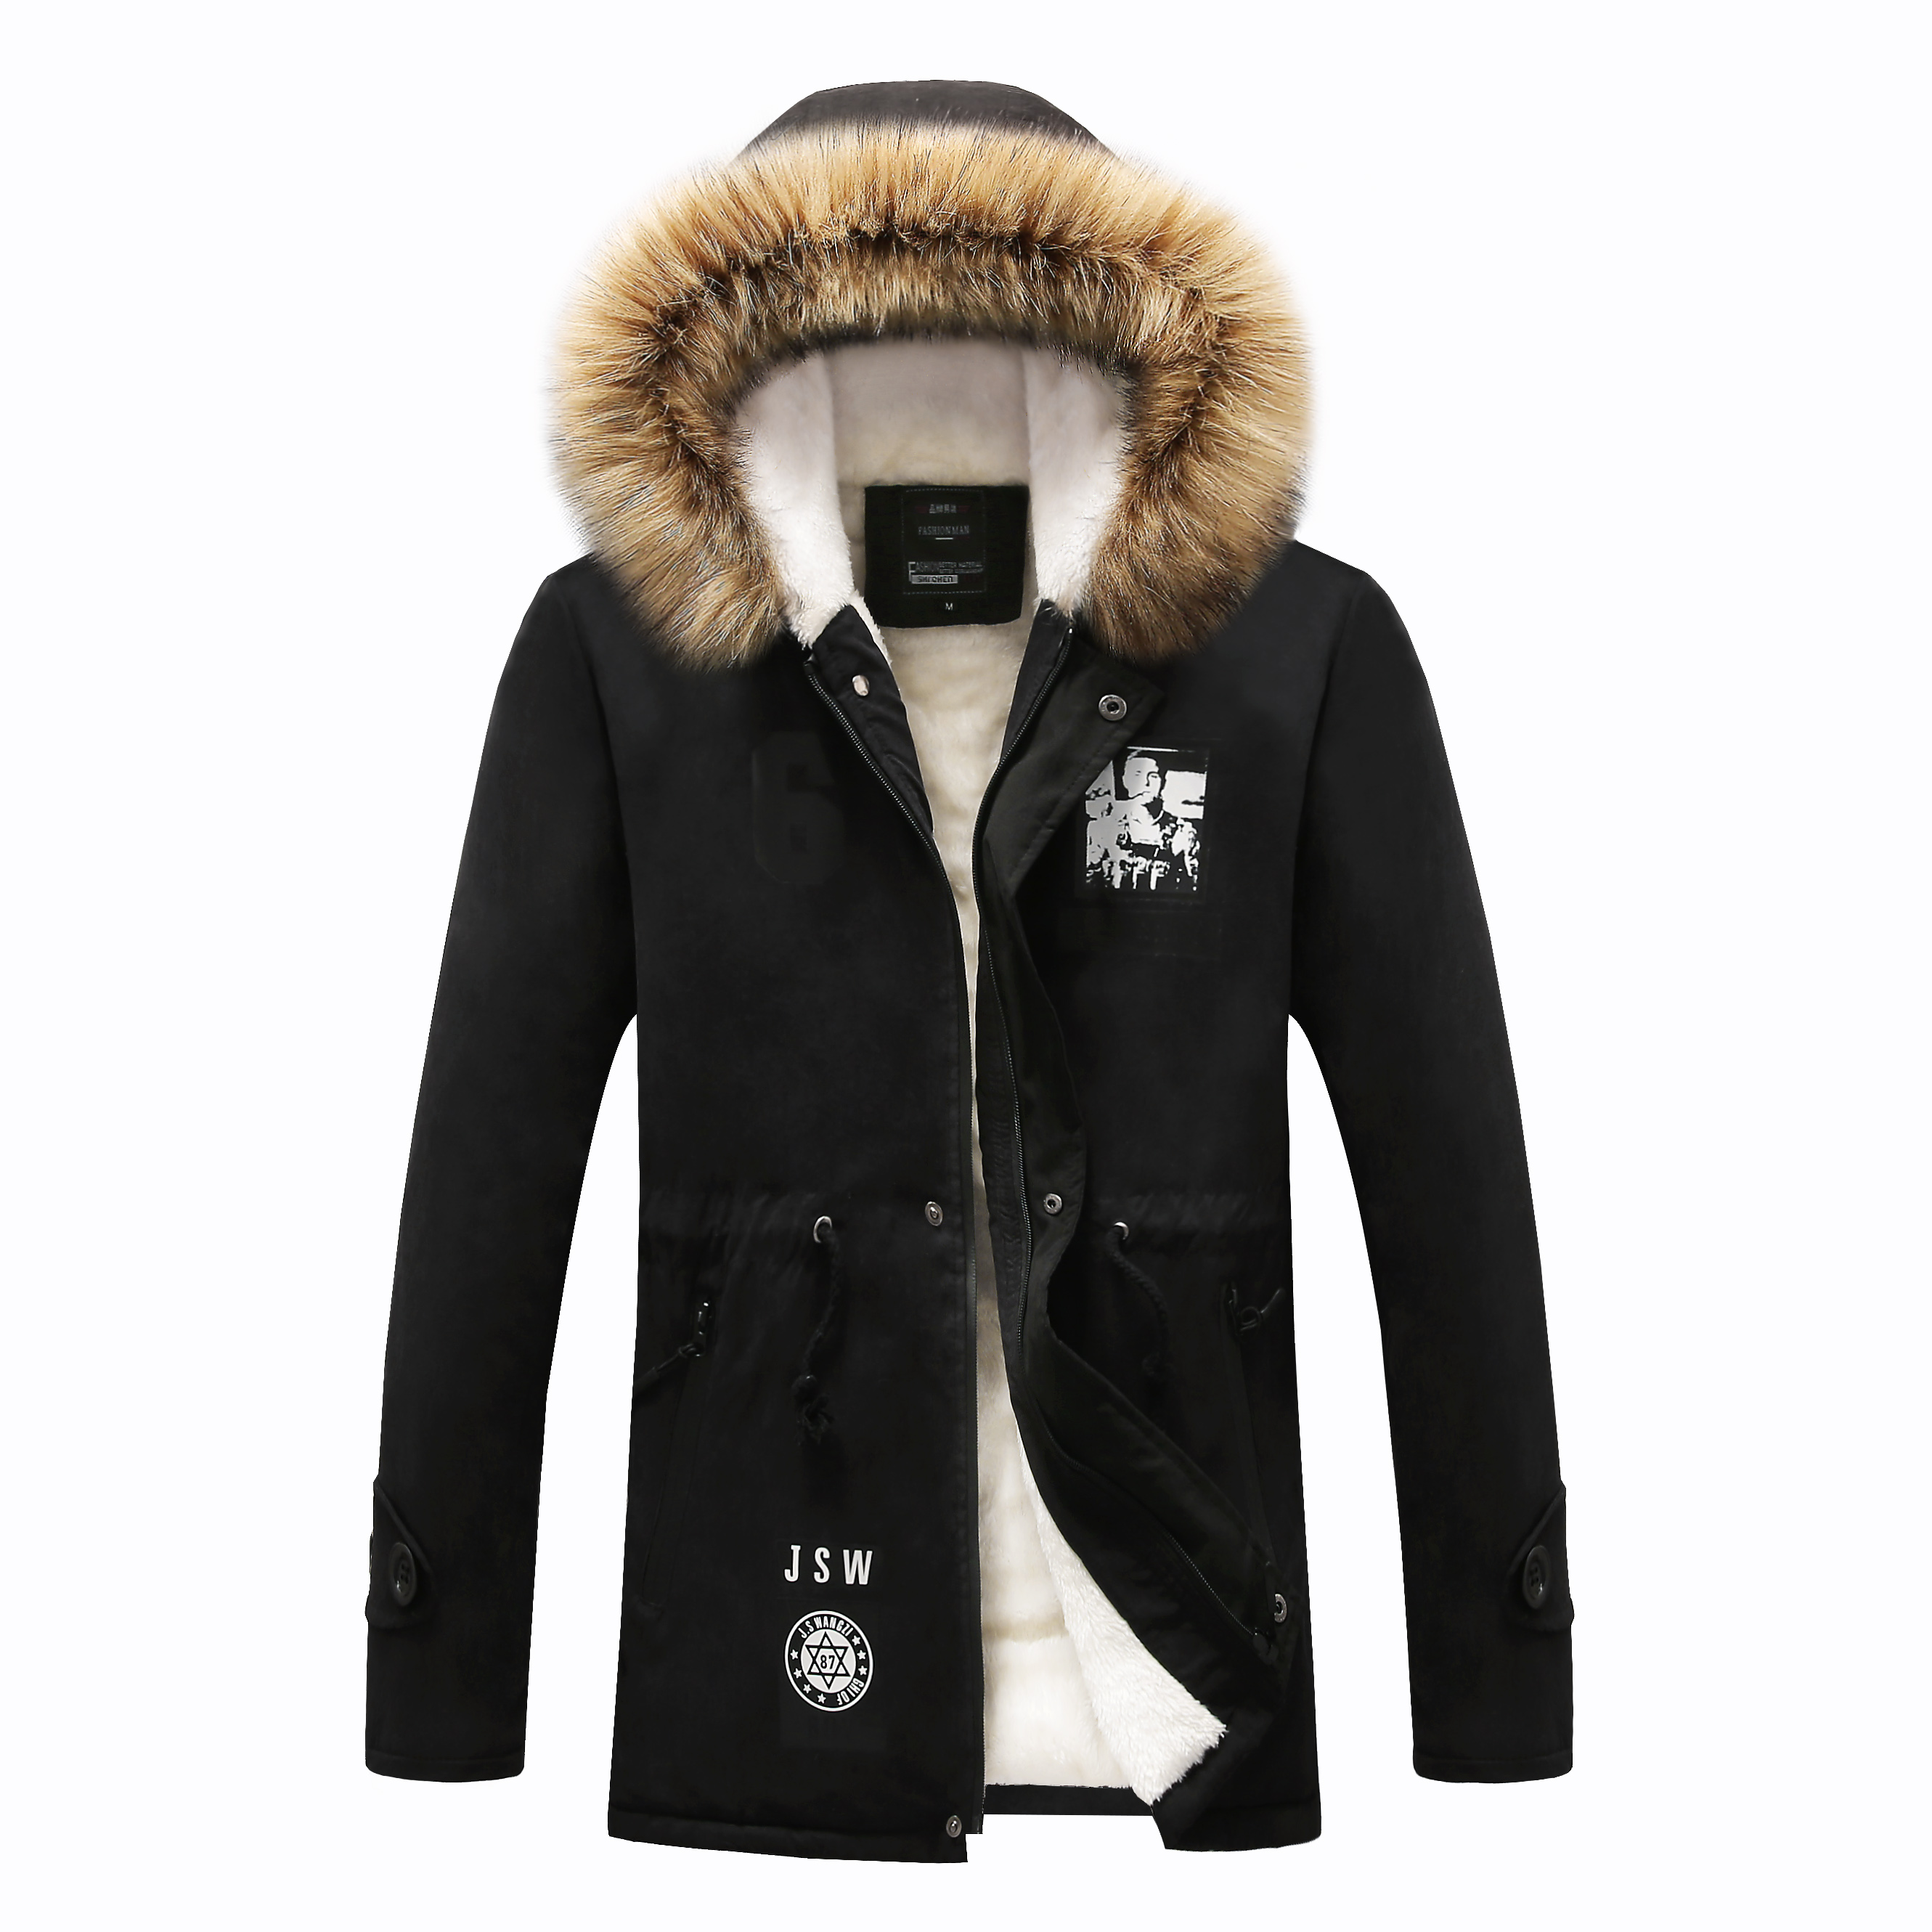 Fashion Fur Liner Jacket   Parkas   Men 2019 Winter Thick Warm Men's Jacket and Coats Casual Hooded Coat Outwears Lovers Clothing